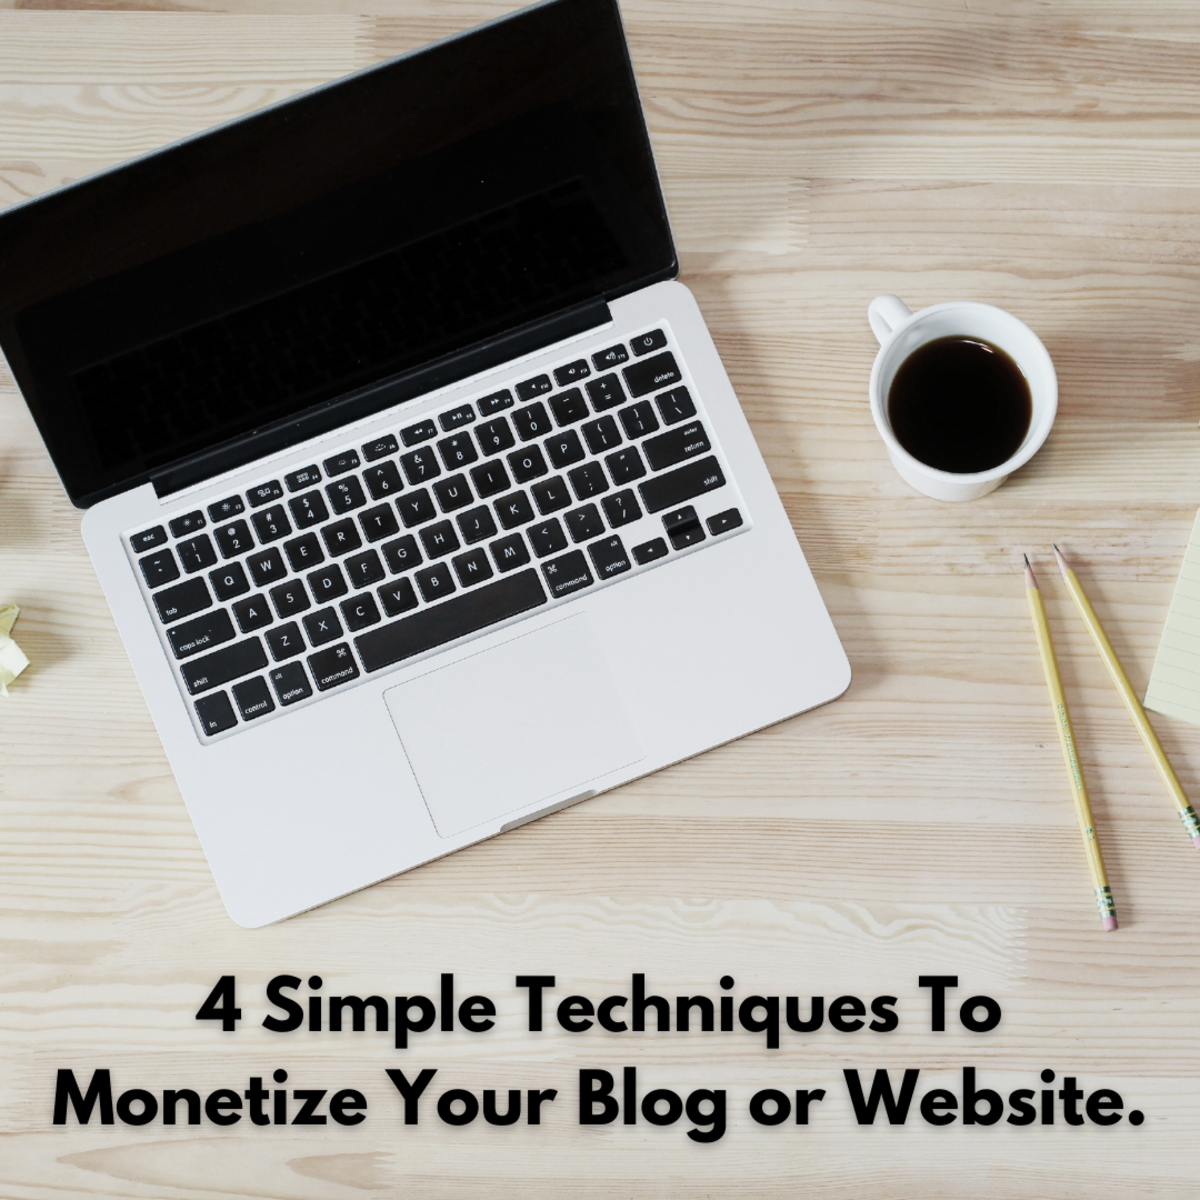 4 Simple Techniques To Monetize Your Blog or Website